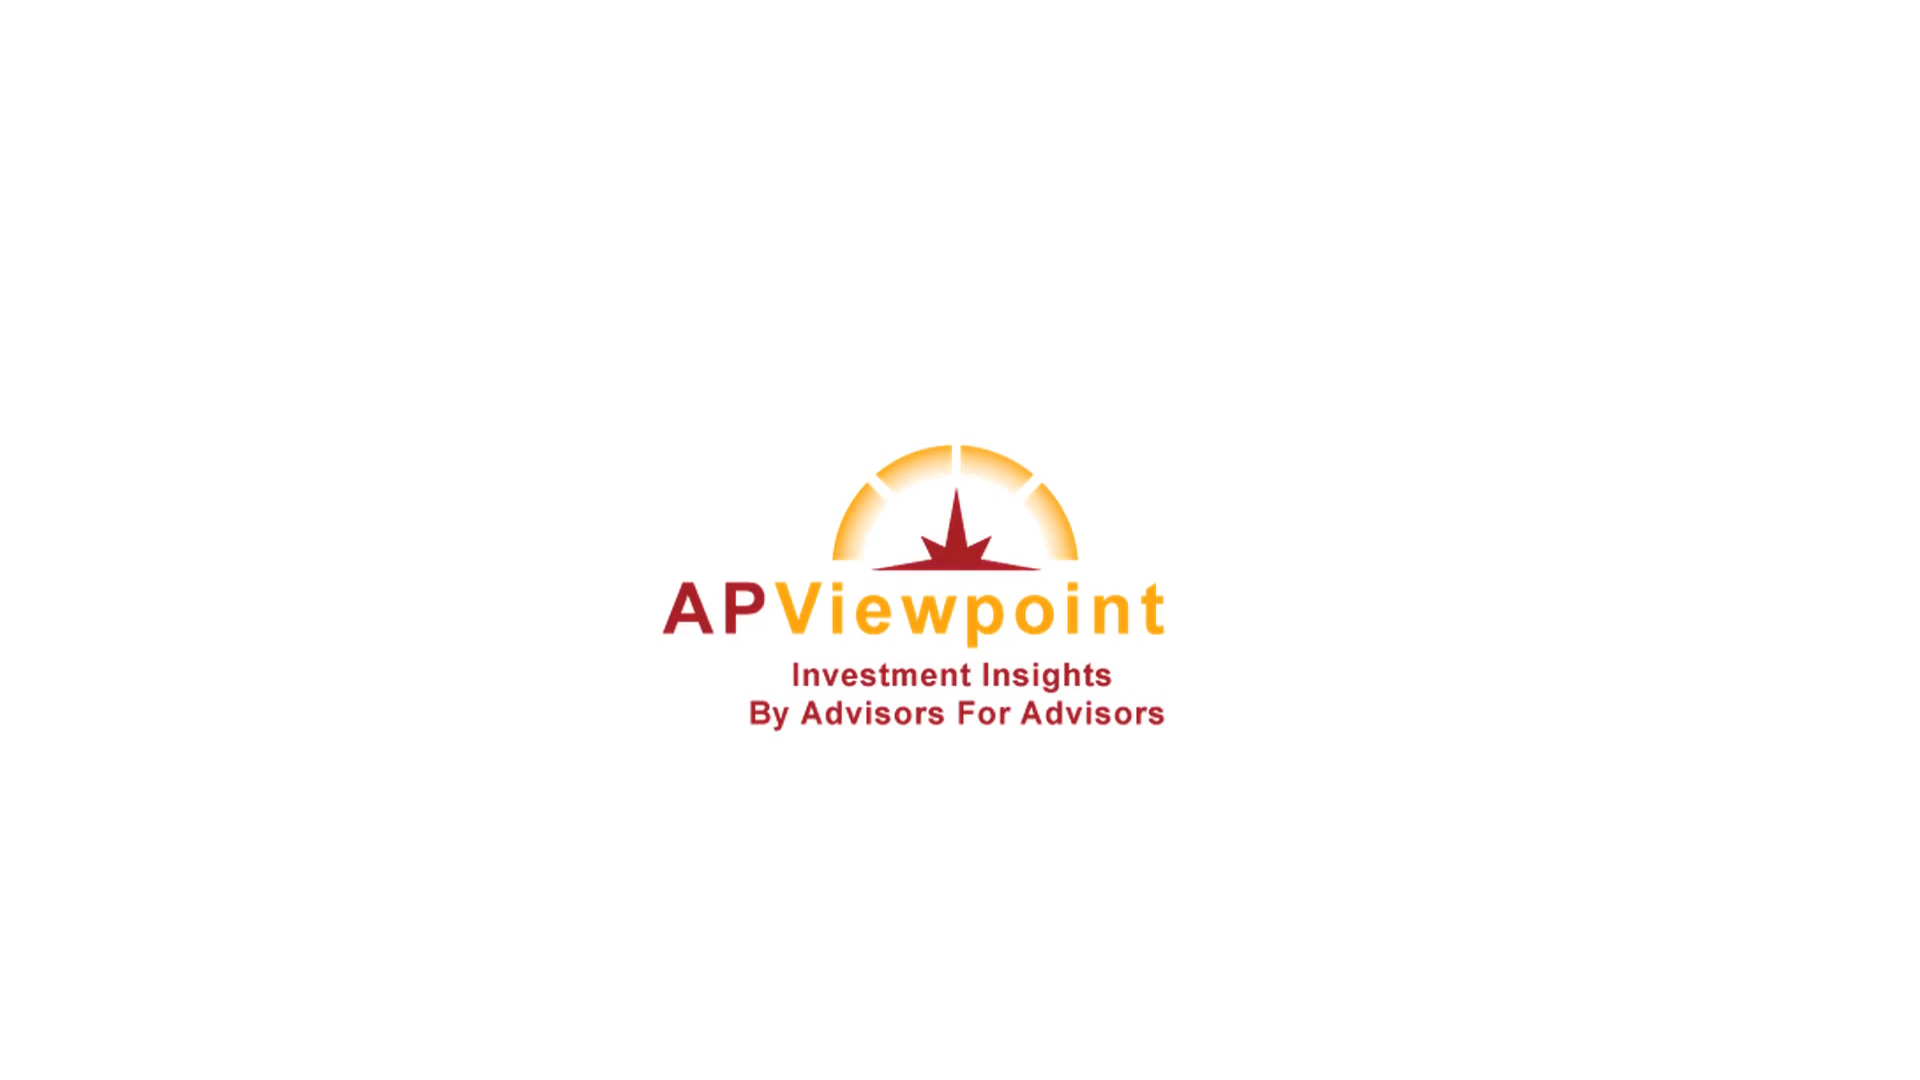 APViewpoint